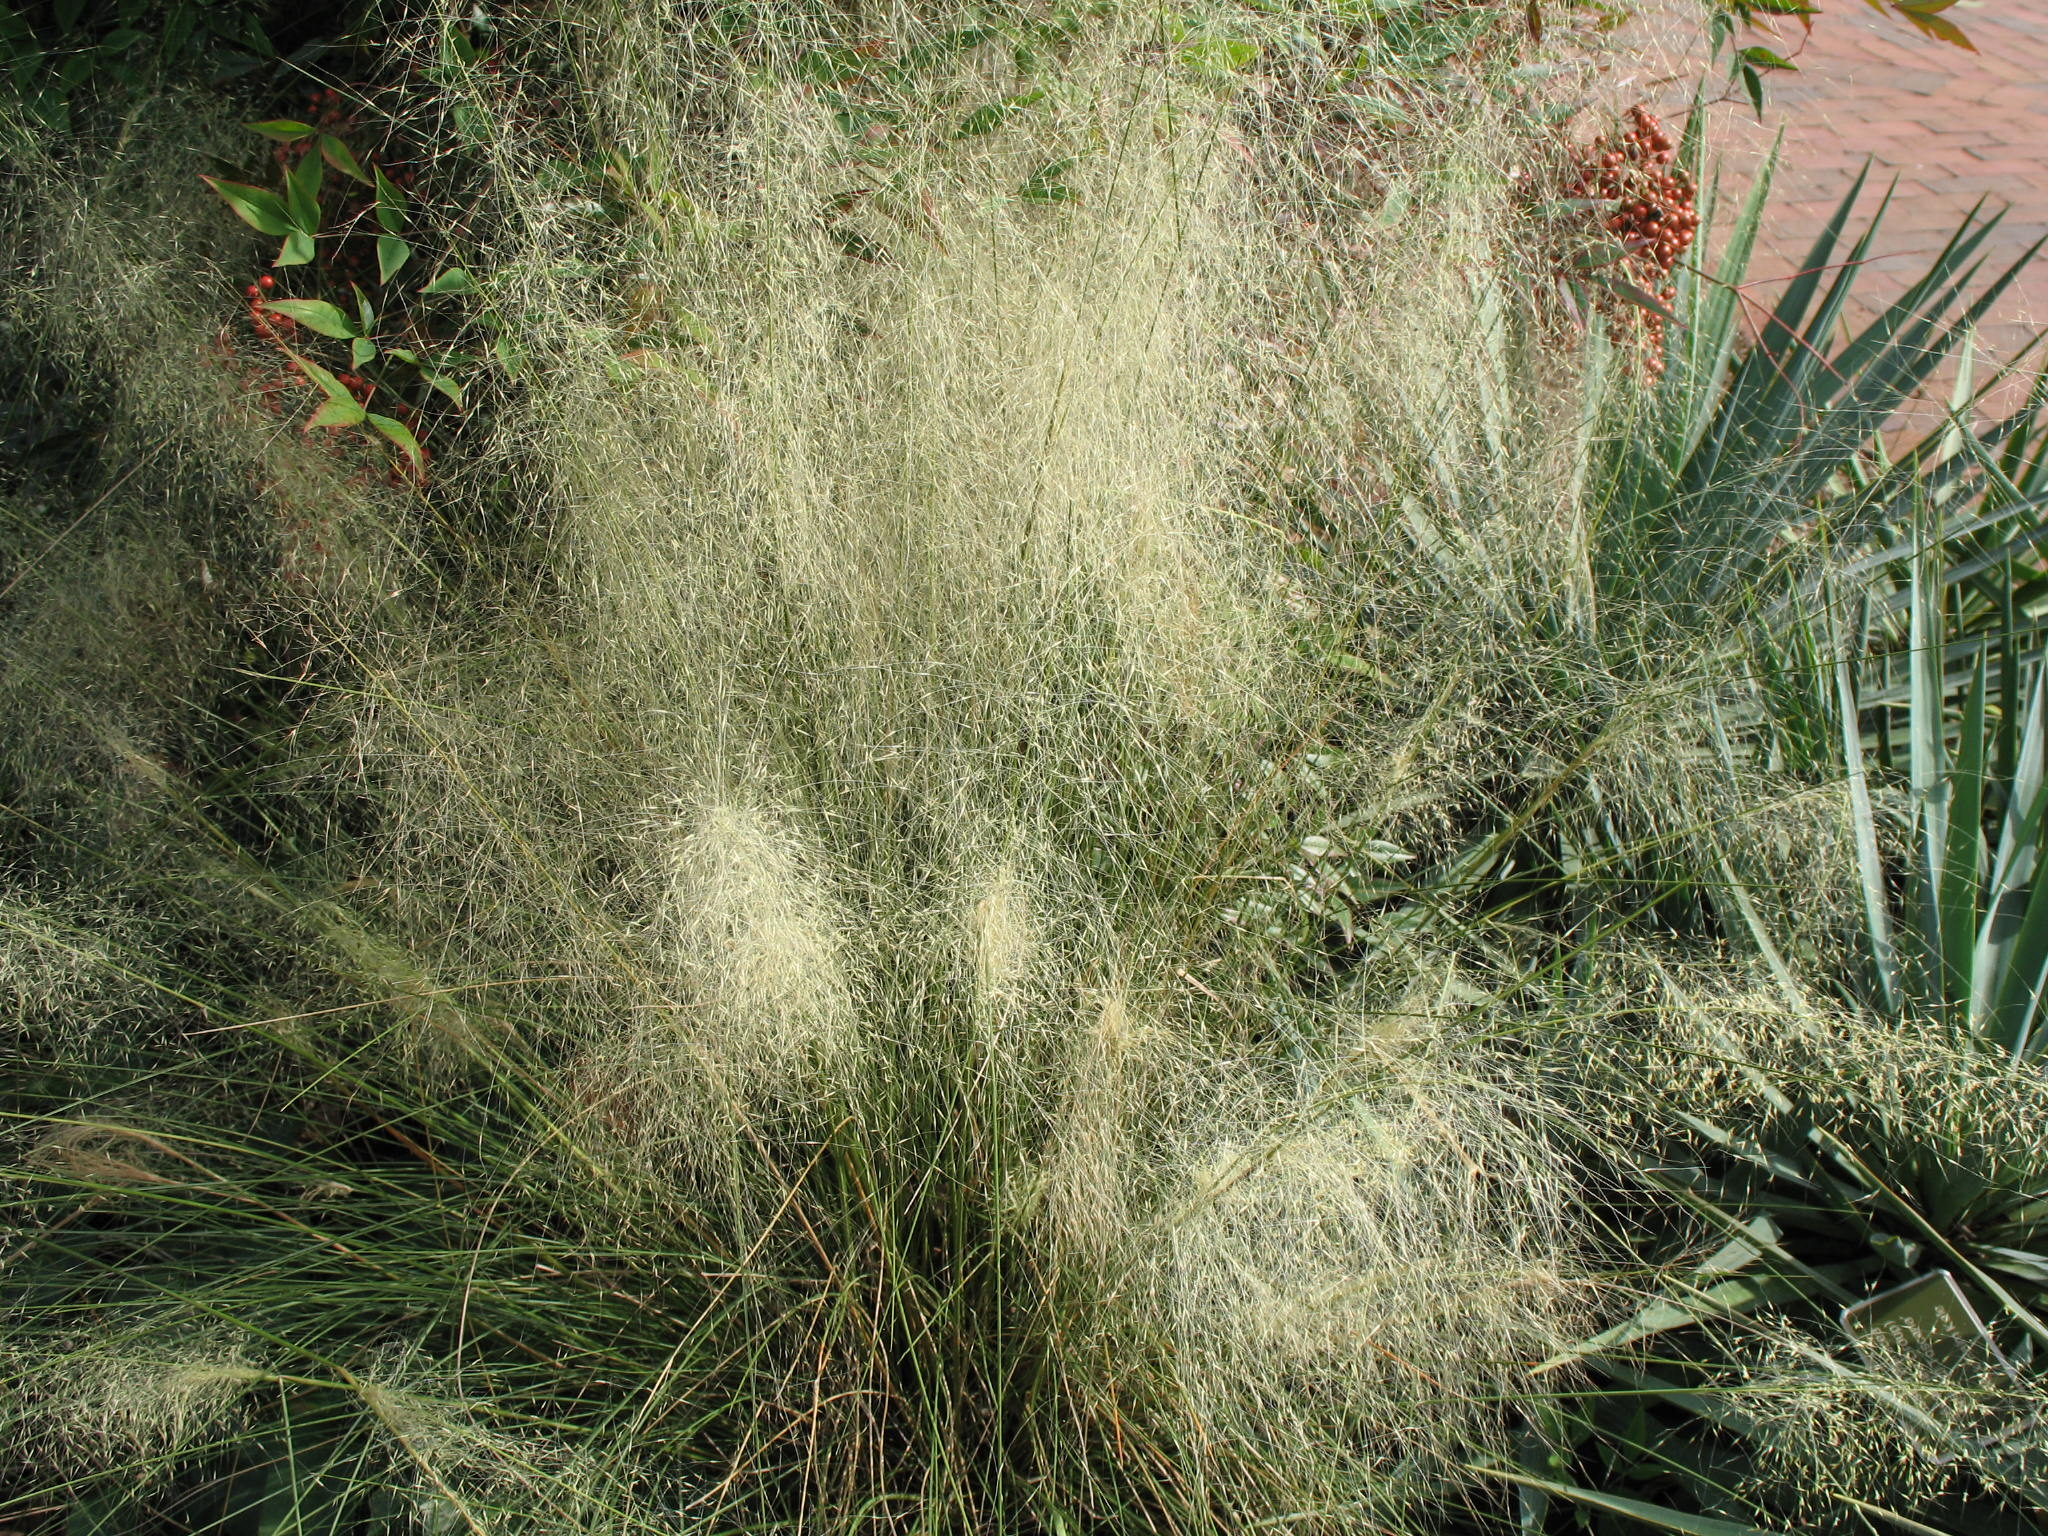 Muhlenbergia capillaris 'White Cloud' / Muhlenbergia capillaris 'White Cloud'